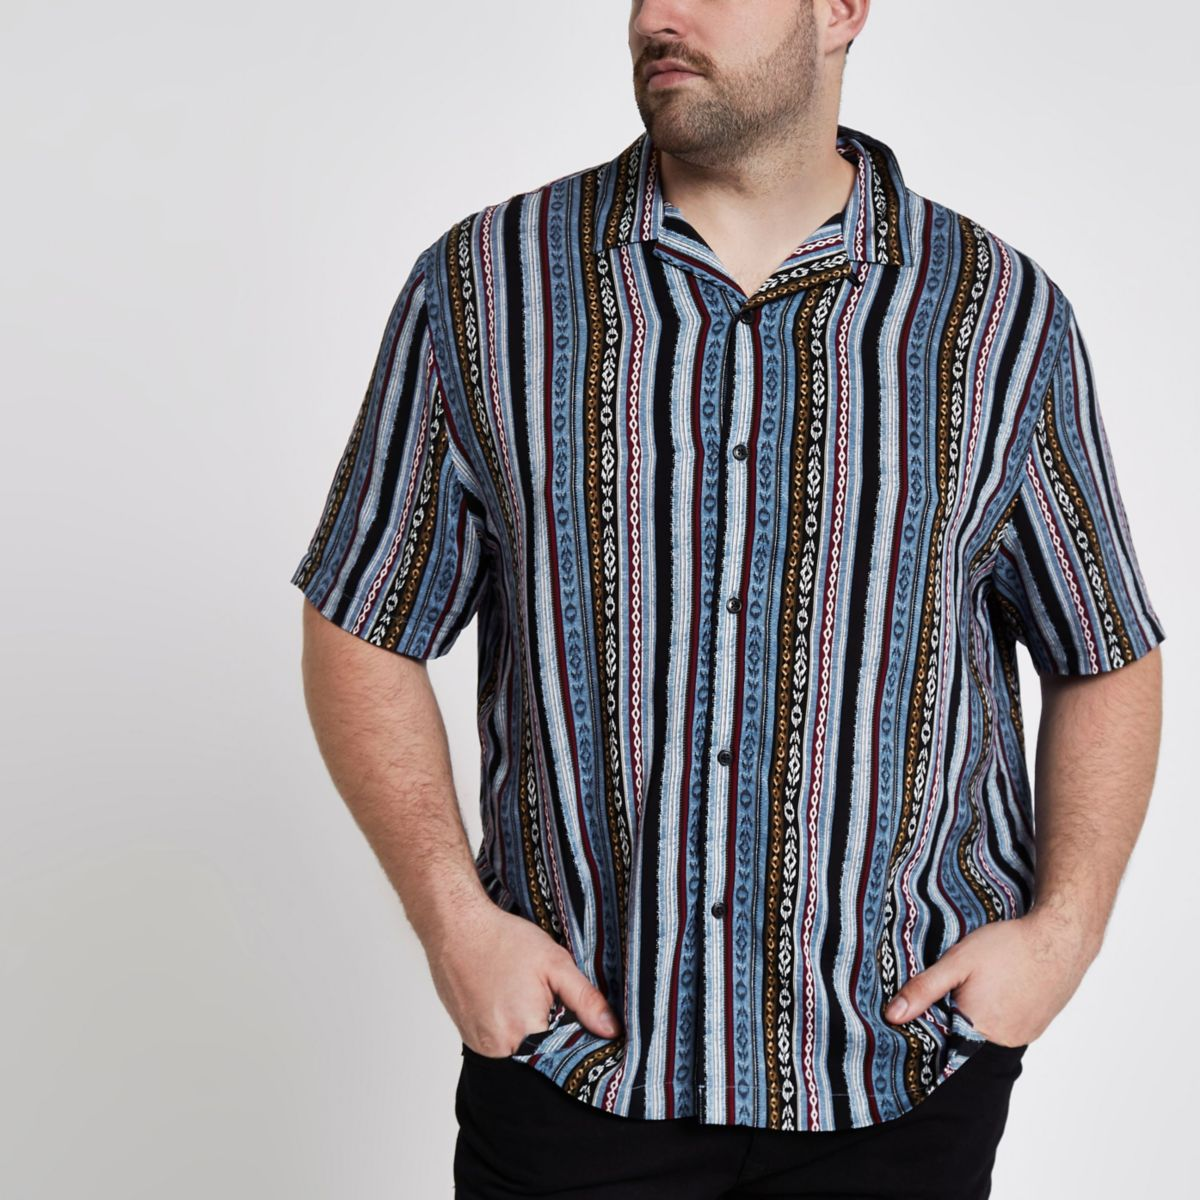 Big and Tall – Blaues Hemd mit Muster